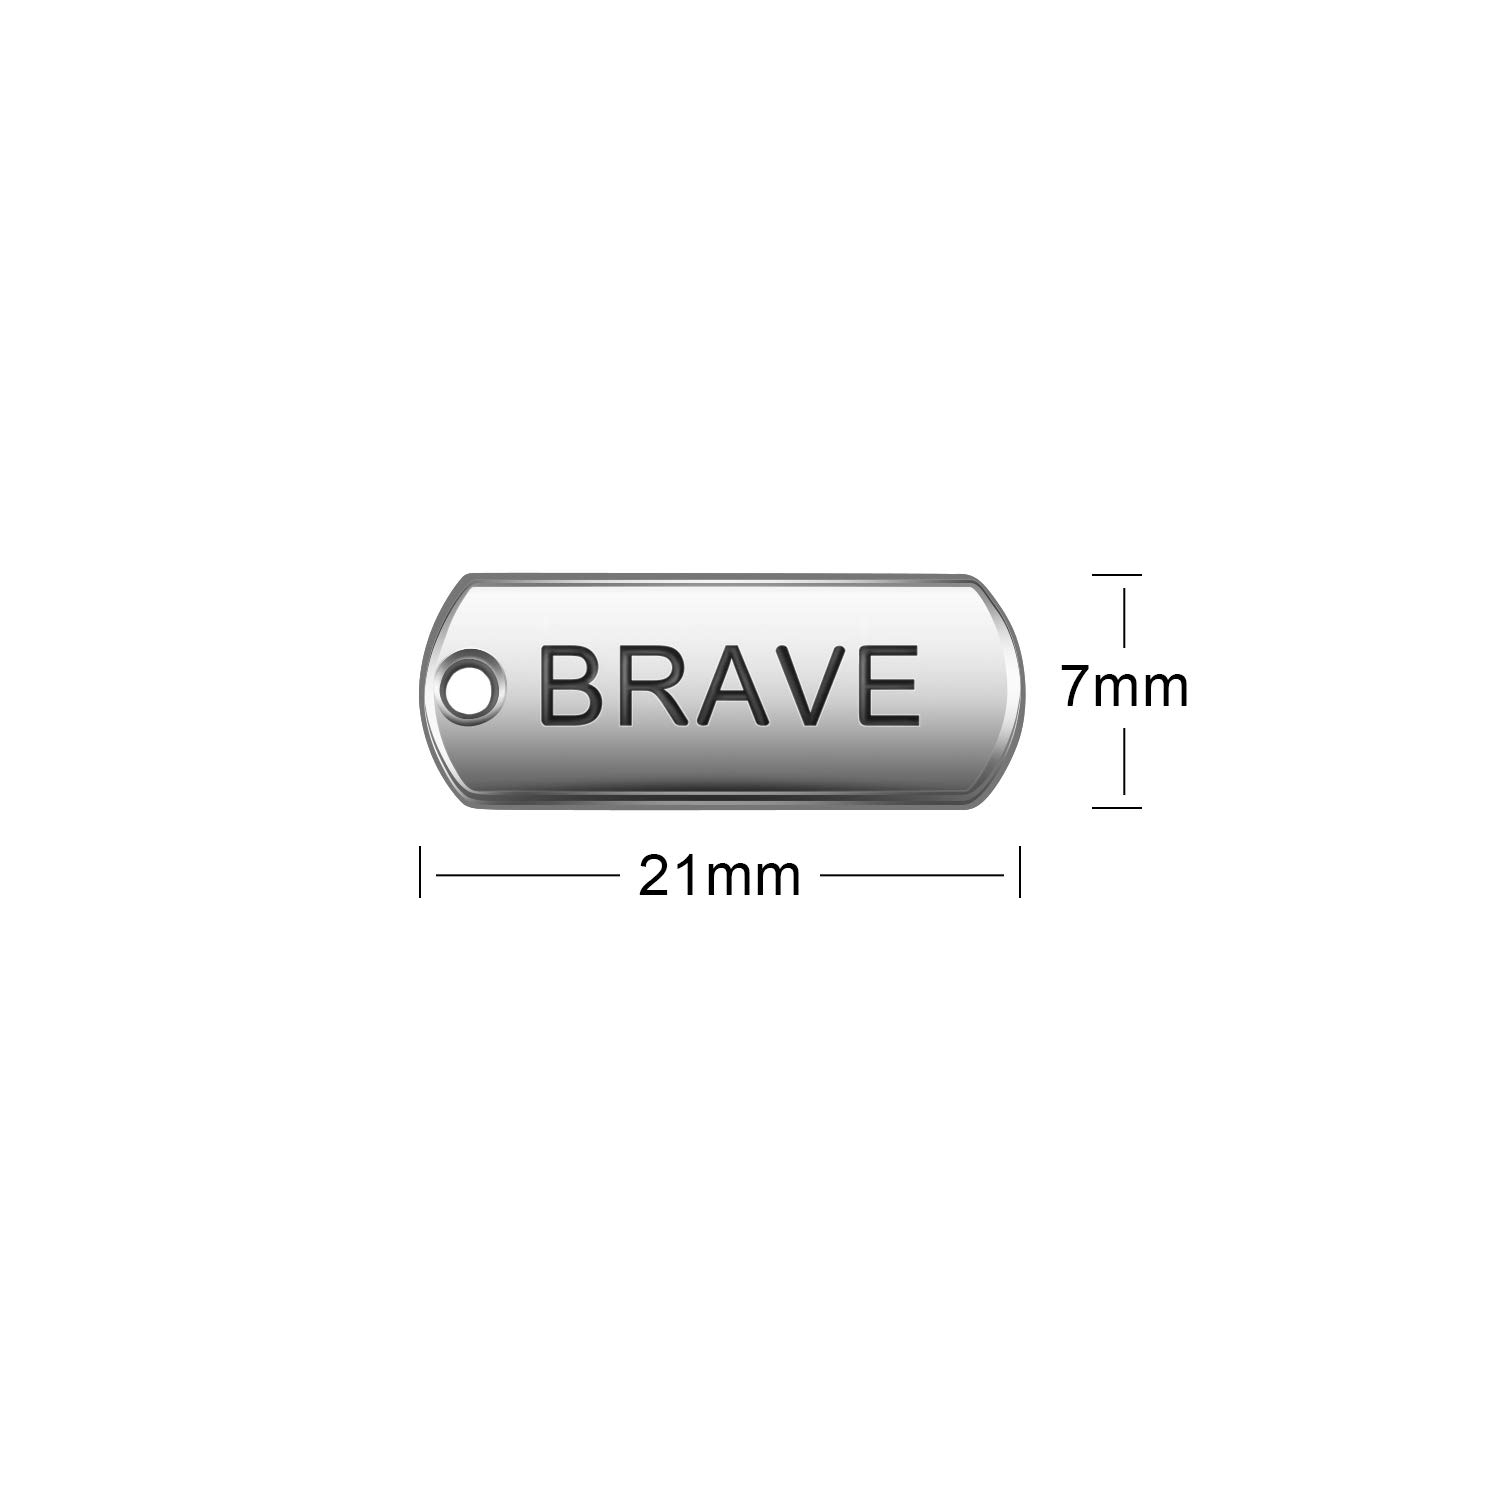 Fashion Accessories and Craft Supplies AIEX 120 Pieces Inspirational Word Charms Pendants Rectangular Pendants for Jewelry Making Sliver Tone DIY Bracelets Necklaces